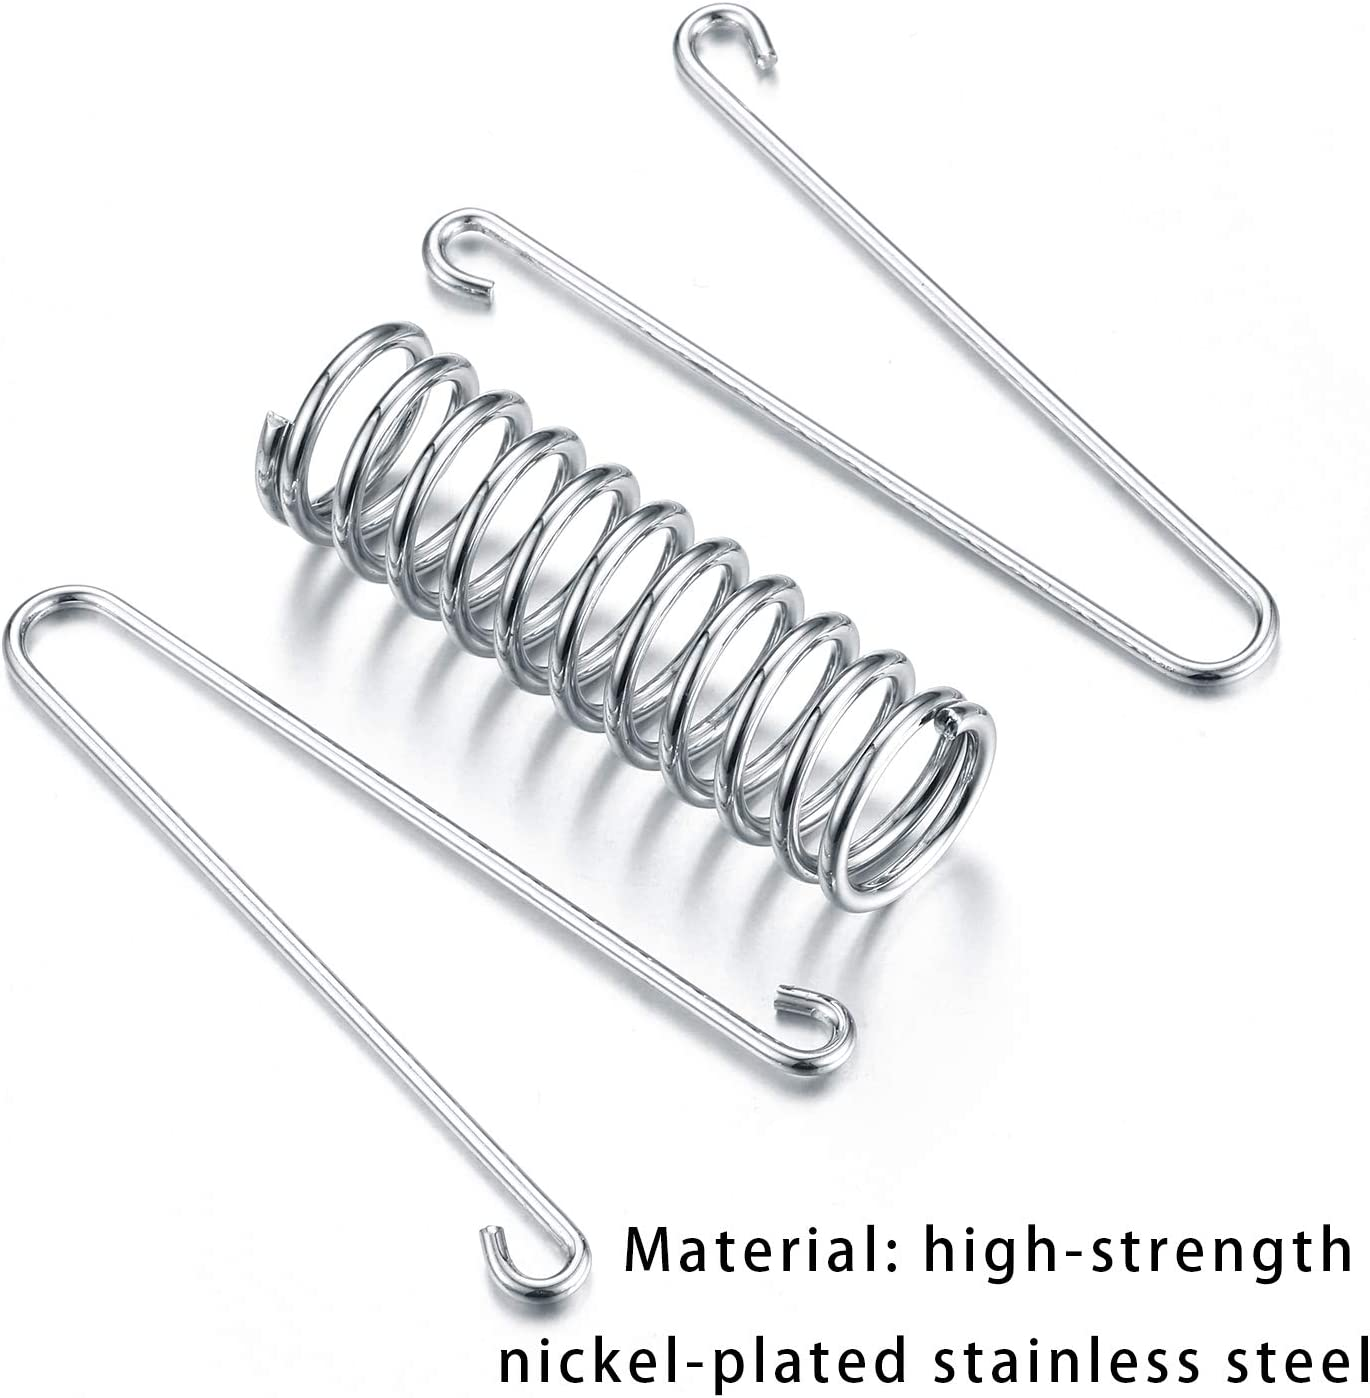 10PCS Tent Spring Buckle Used for Camping Hiking Stainless Steel Windproof Camping Awning Rope Tensioner Fishing and Mountaineering